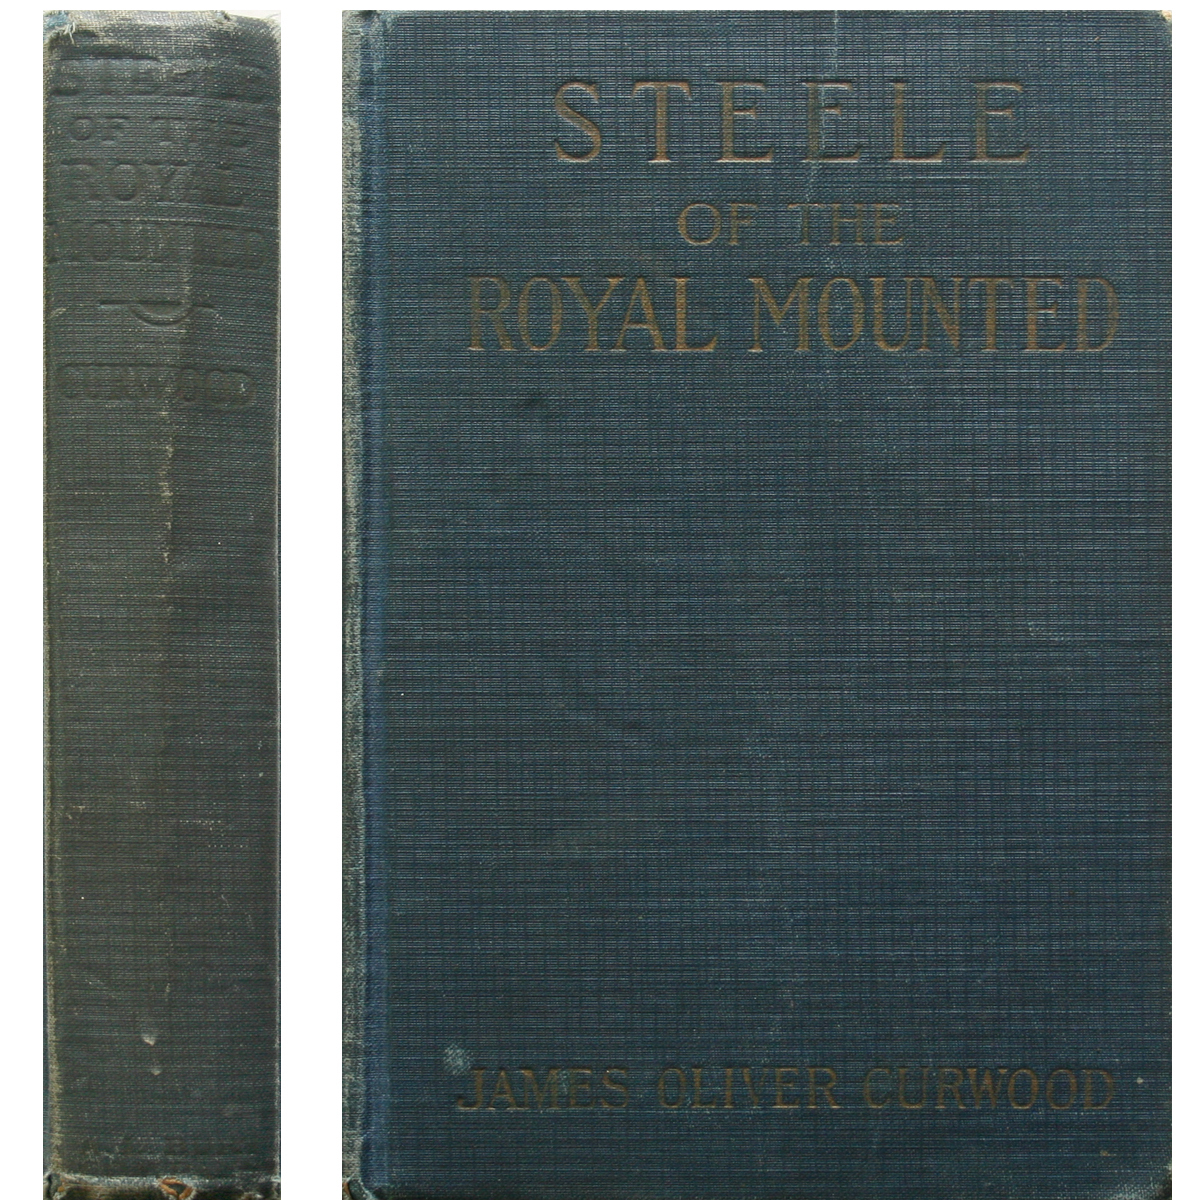 Primary image for 1925 Steele Of The Royal Mounted Photoplay Edion